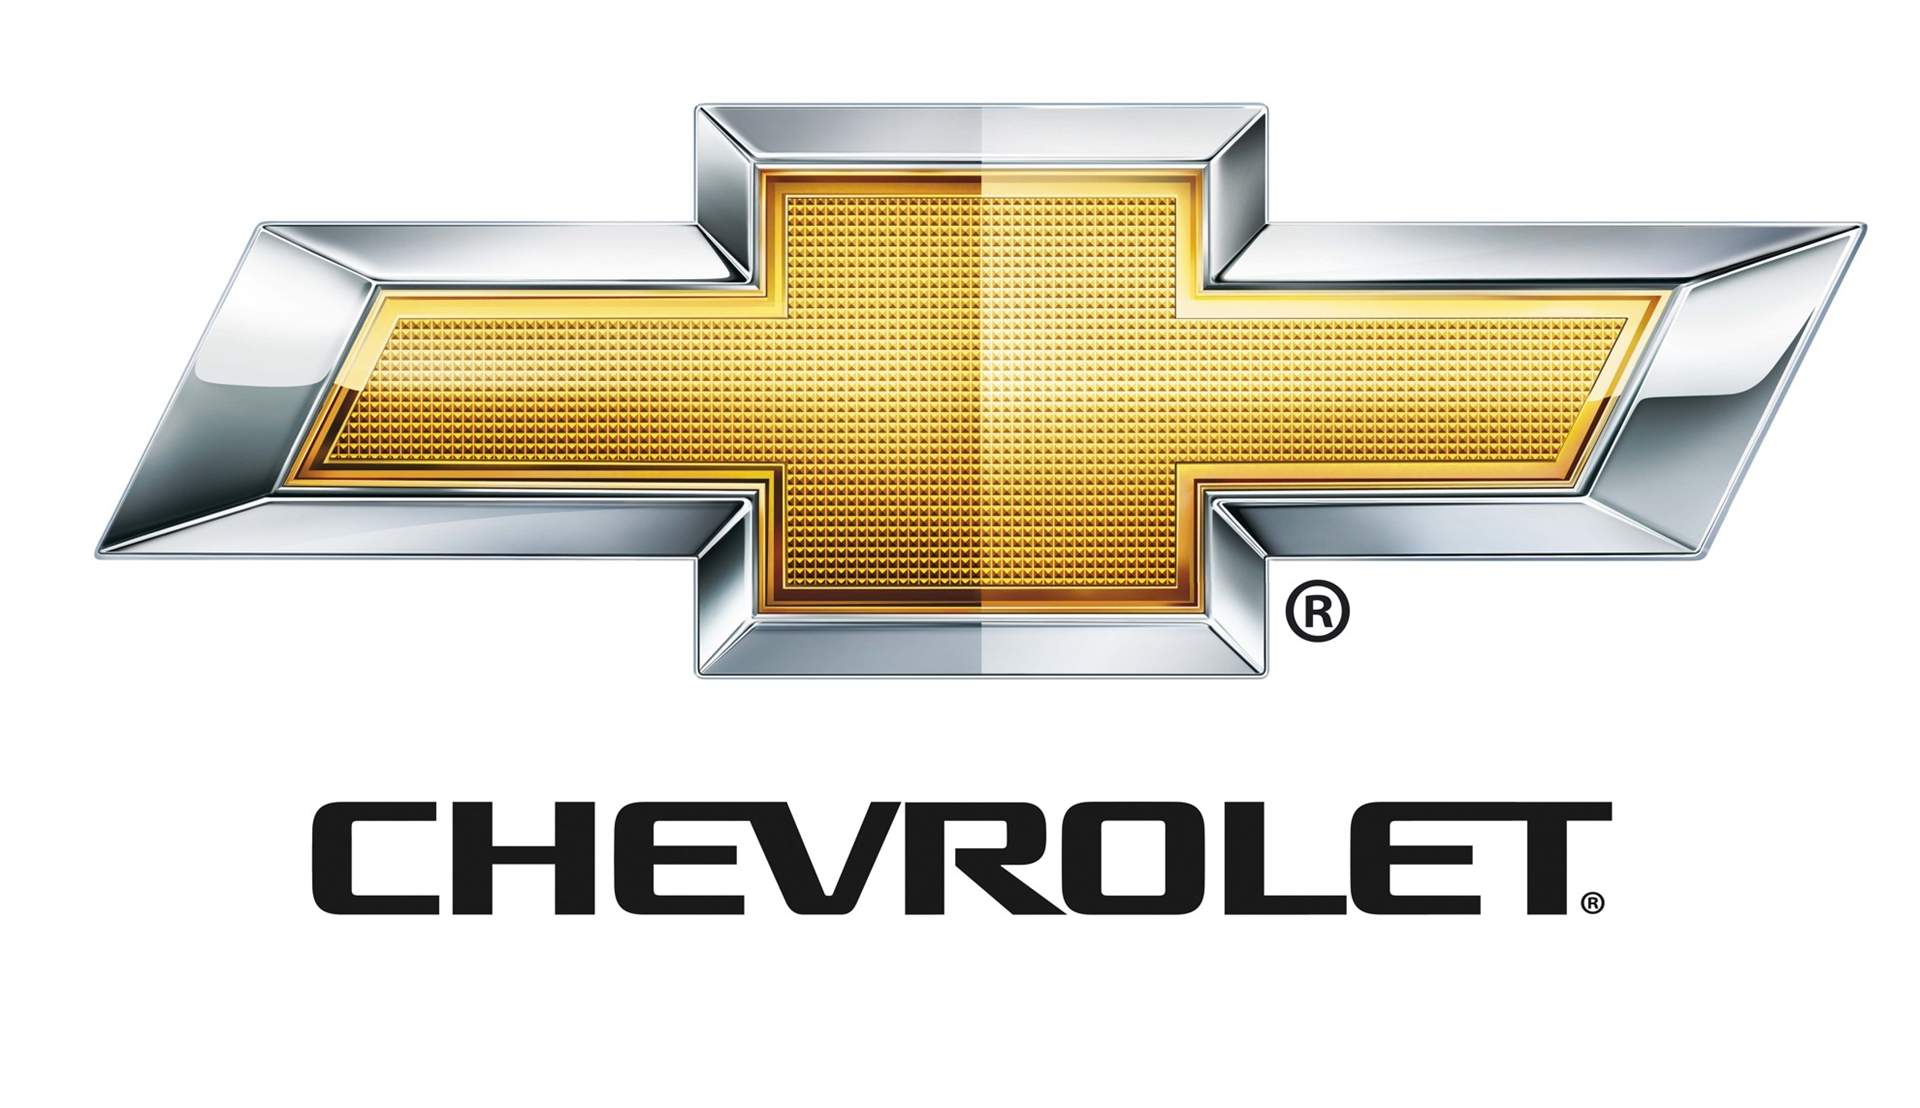 CHEVROLET TO JOIN THE STARS FOR RONAN KEATING'S EMERALDS ...